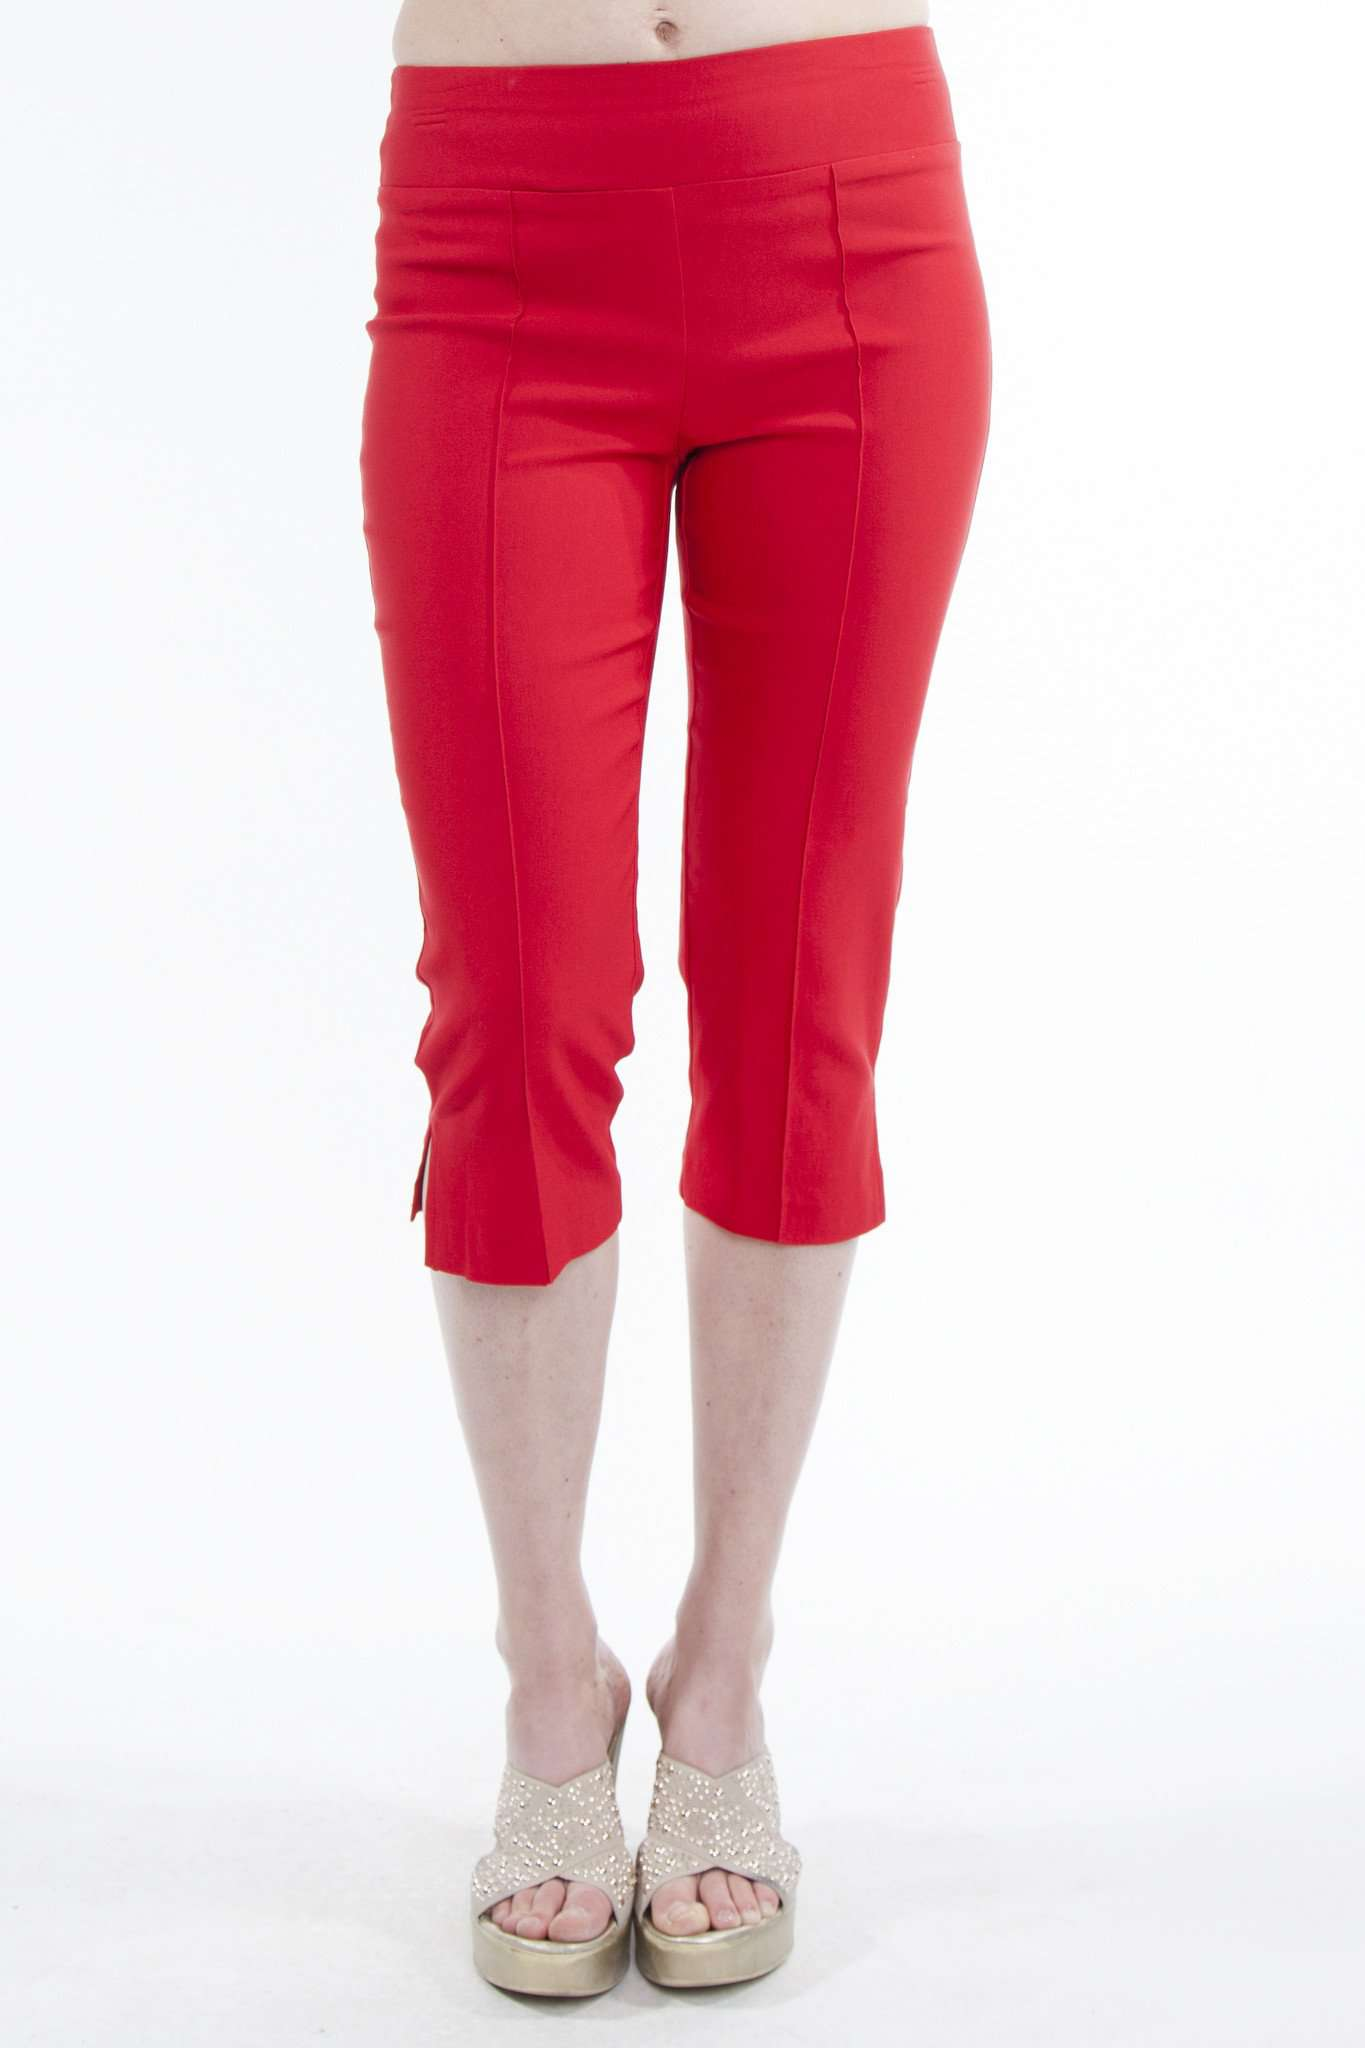 Red Capri Pants in Quality Stretch Fabric-Flat Front Helps to Hide Tummy Area-Made in Canada - Yvonne Marie